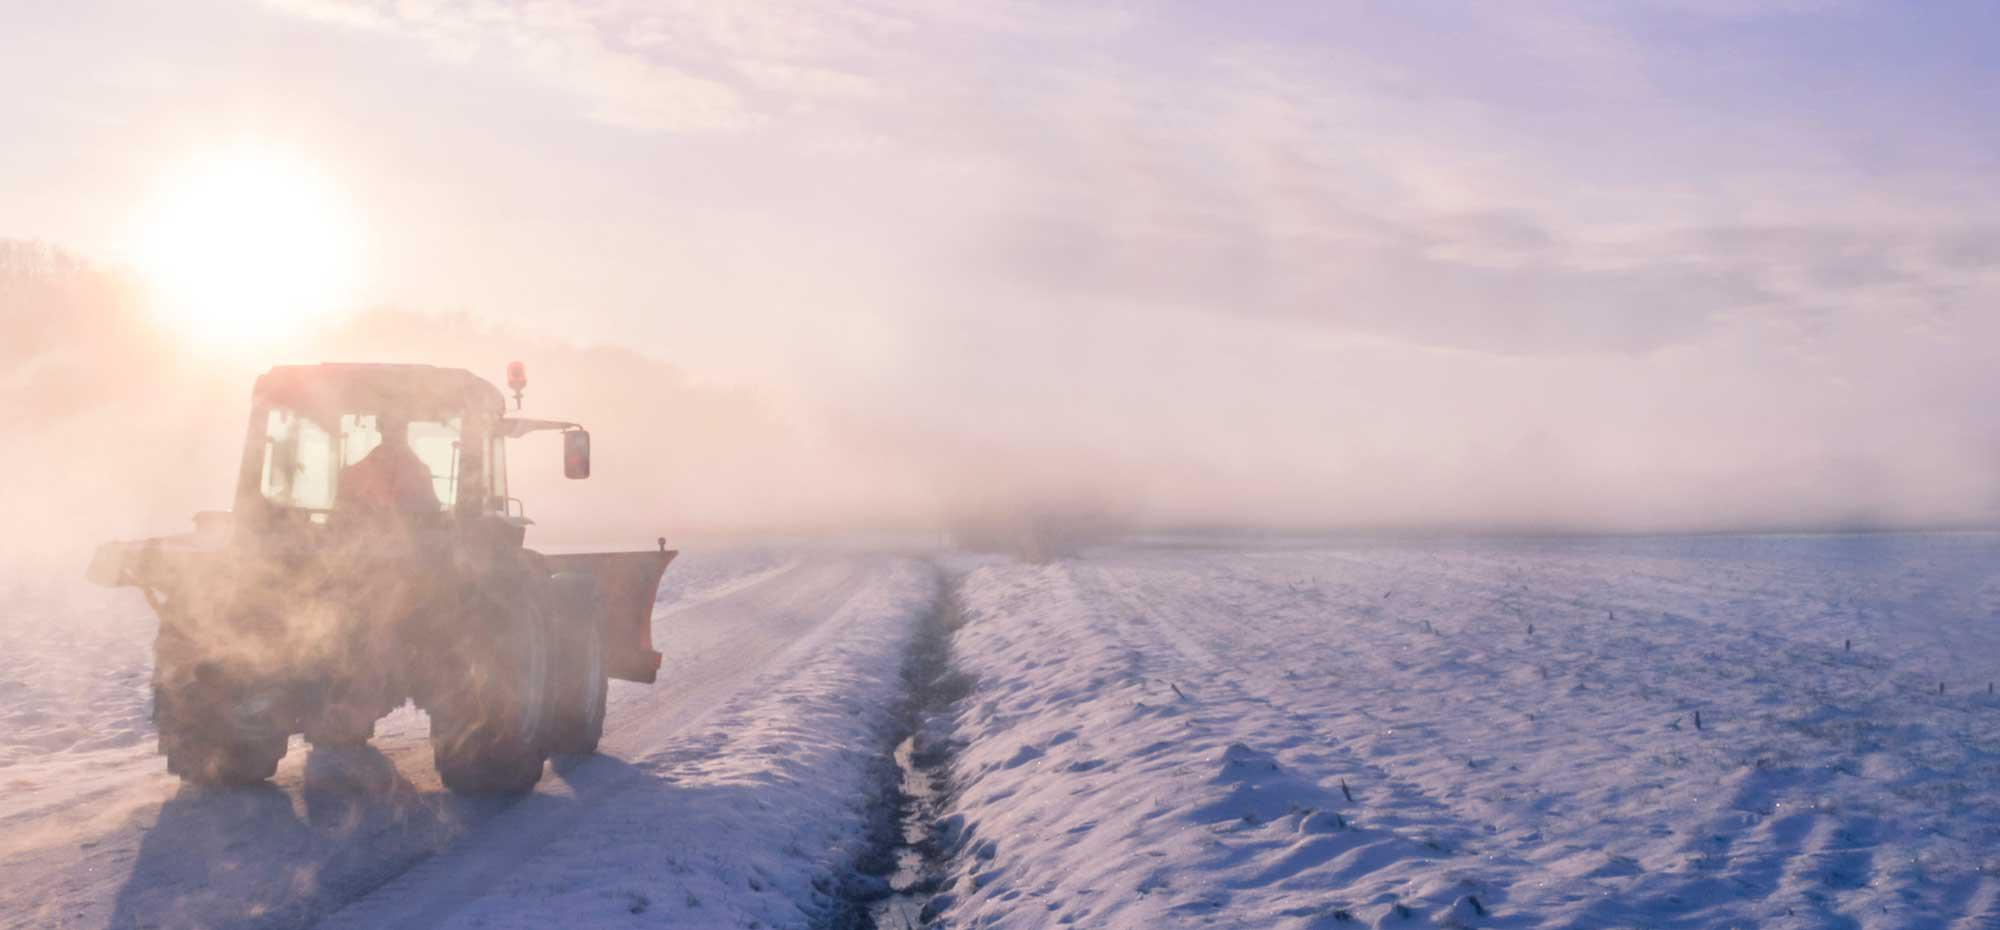 ice cleats for farming